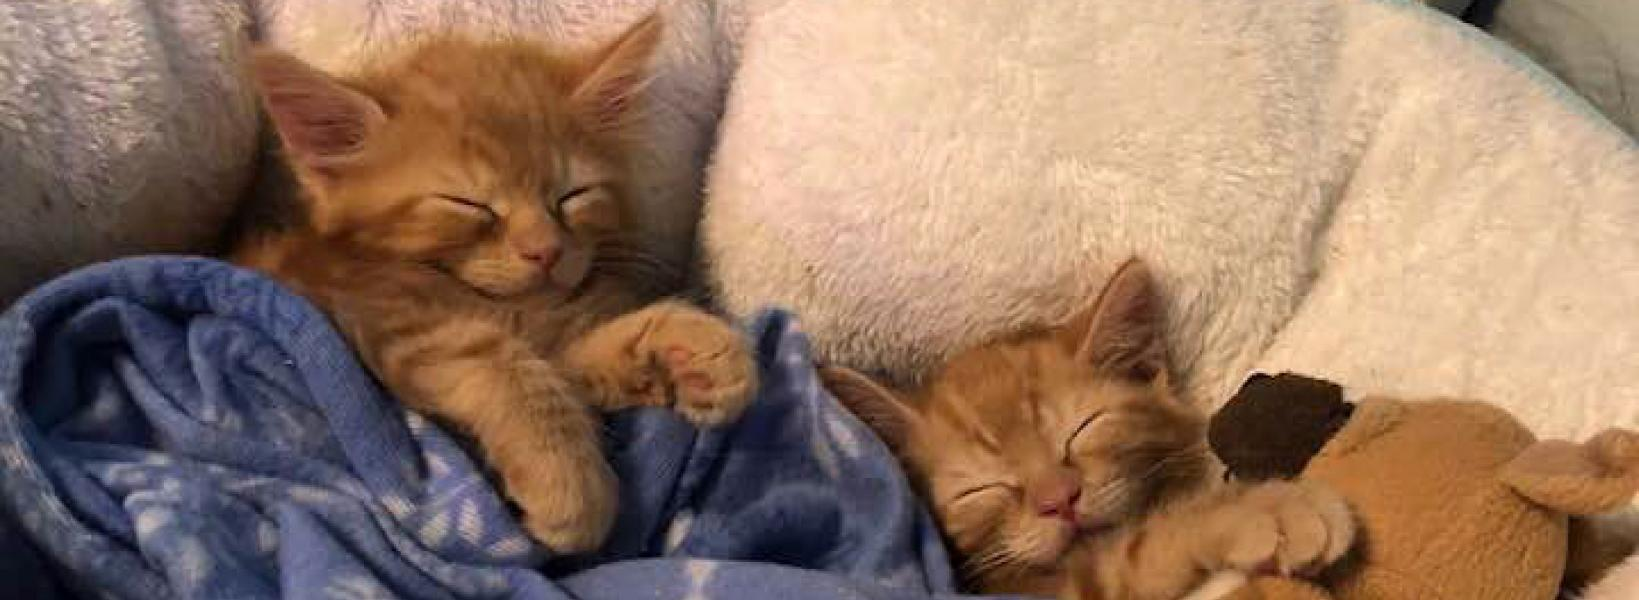 Humane Society Cats Are Social Animals Adopt One Kitten For 125 And Two For Just 200 Washington Post Atlantas Largest No Kill Animal Shelter Rescue Dog Cat